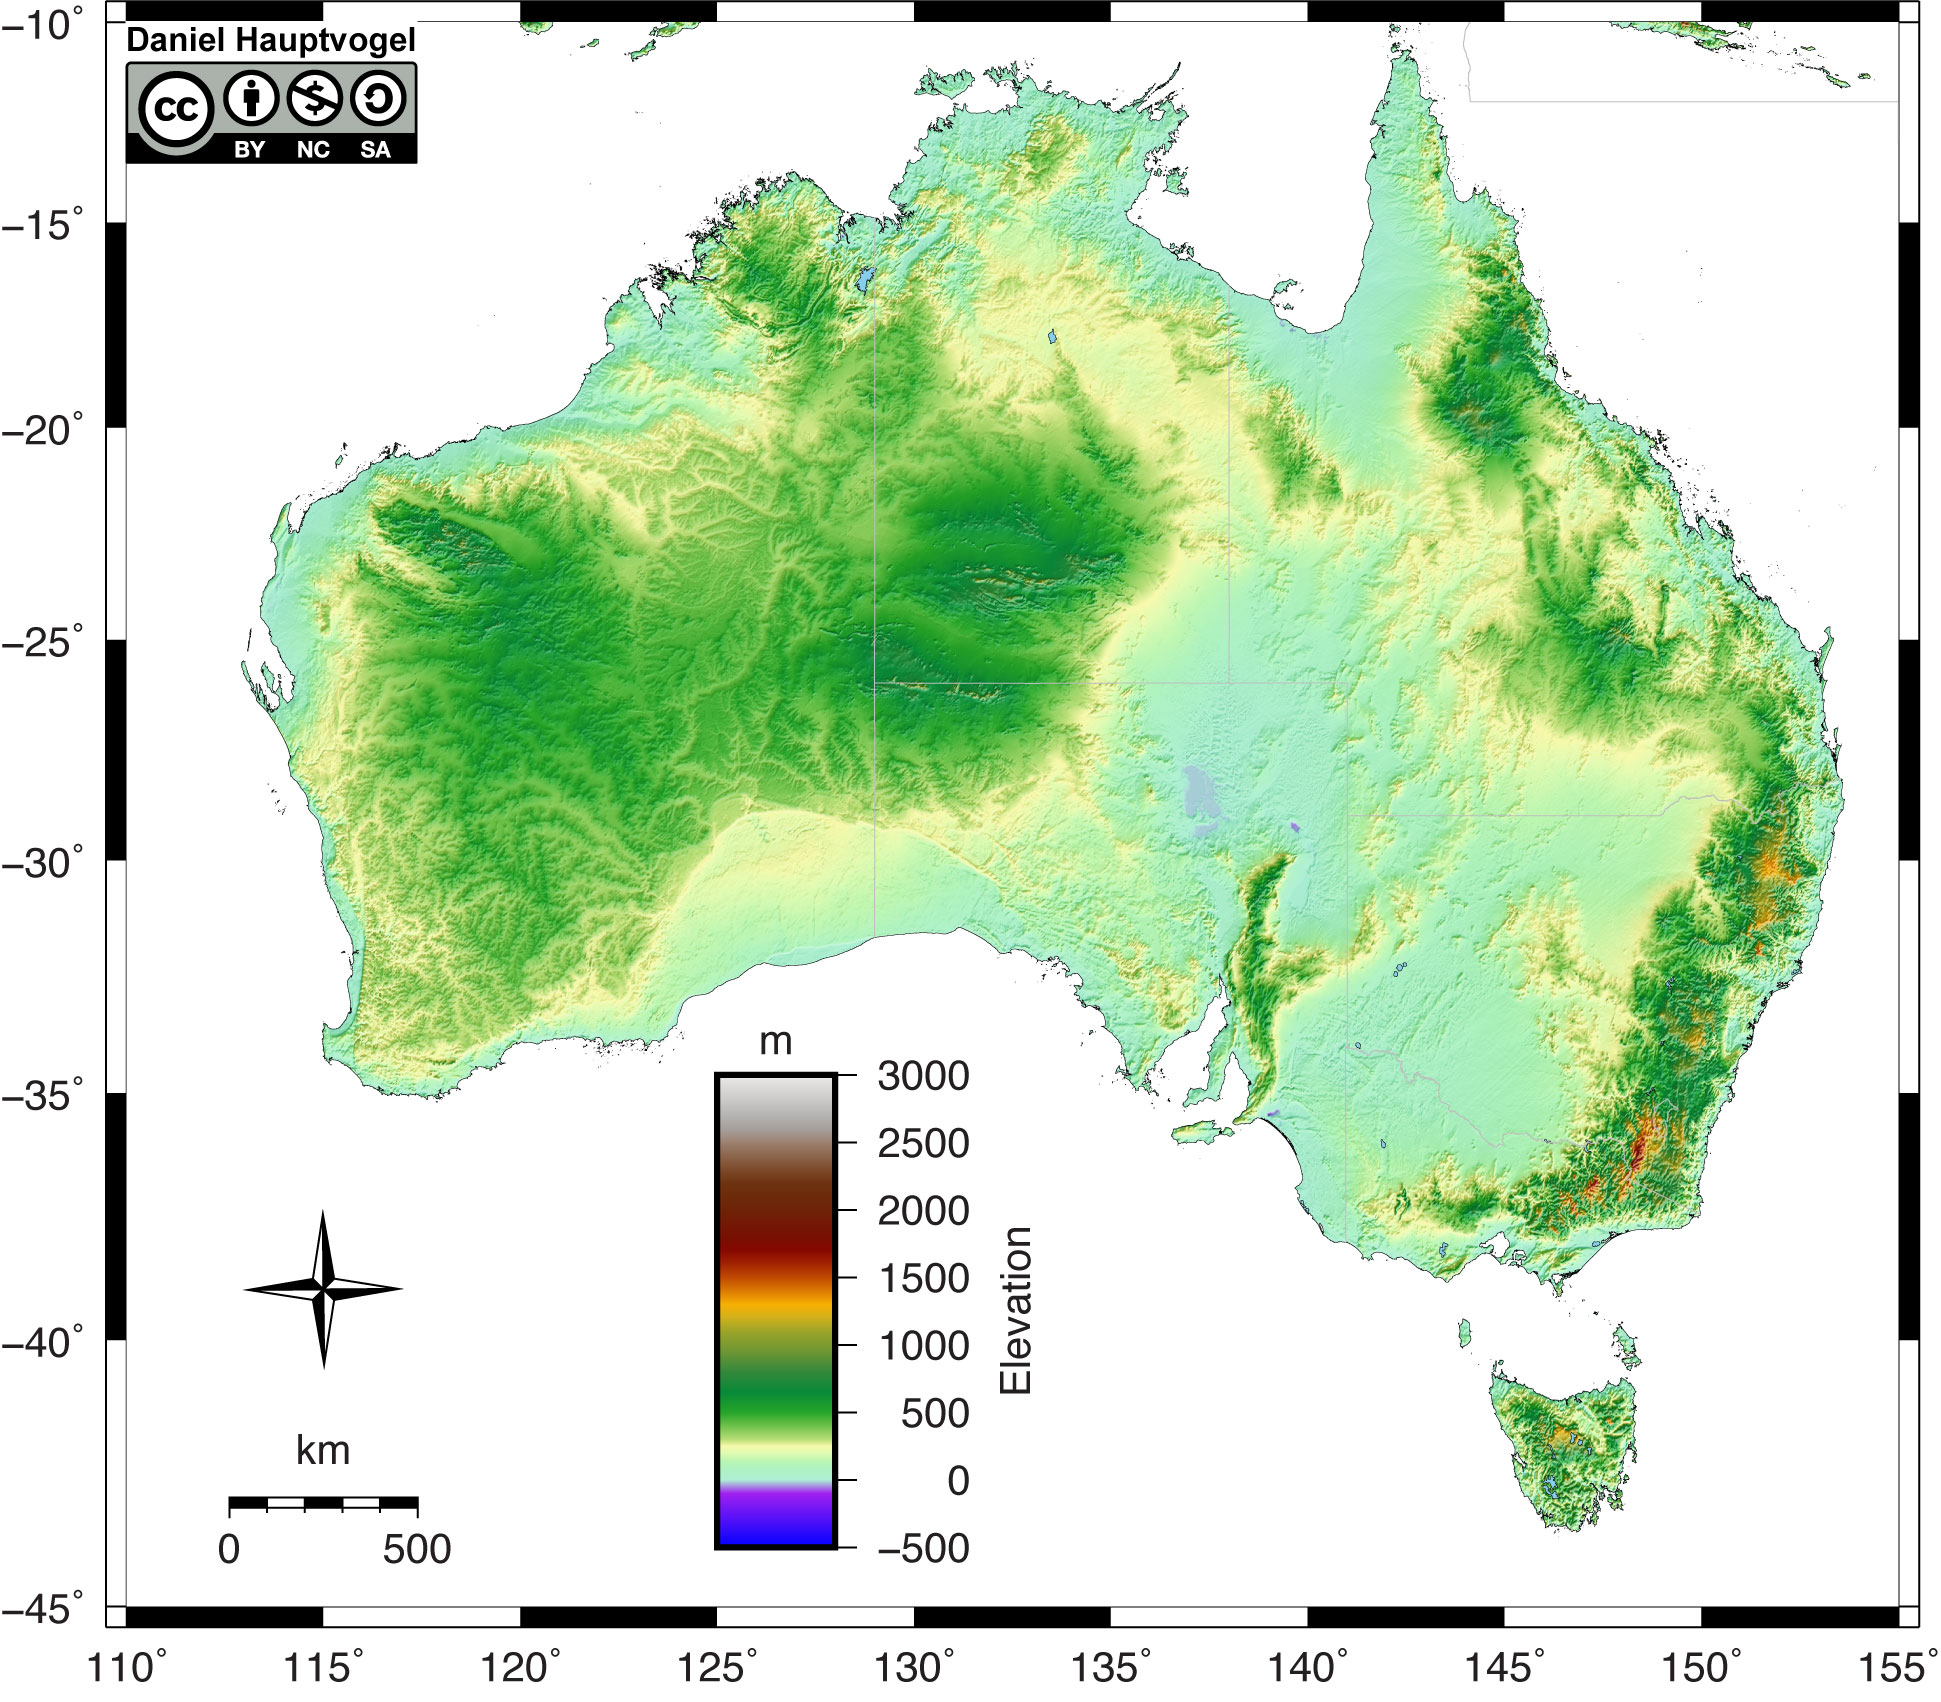 Shaded relief map of Australia.